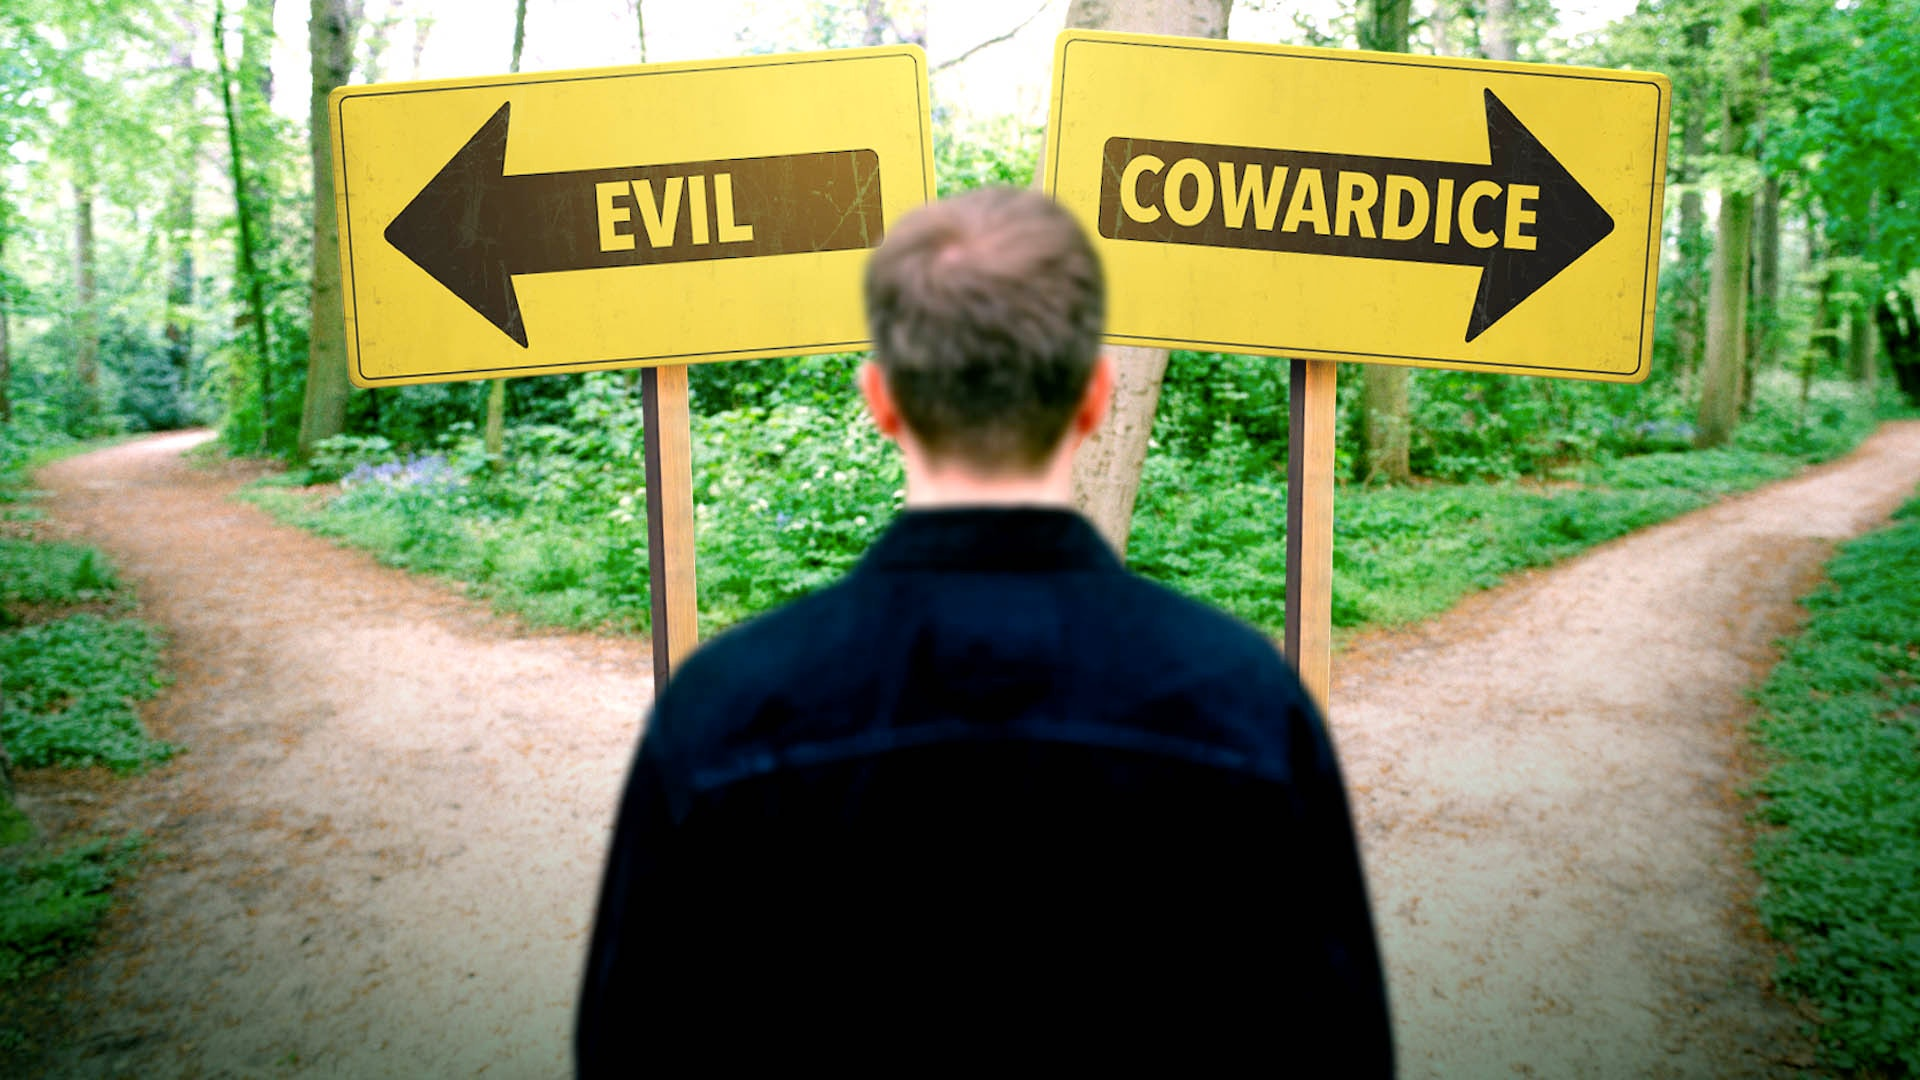 Ep. 694 - Evil To The Left, Cowardice To The Right